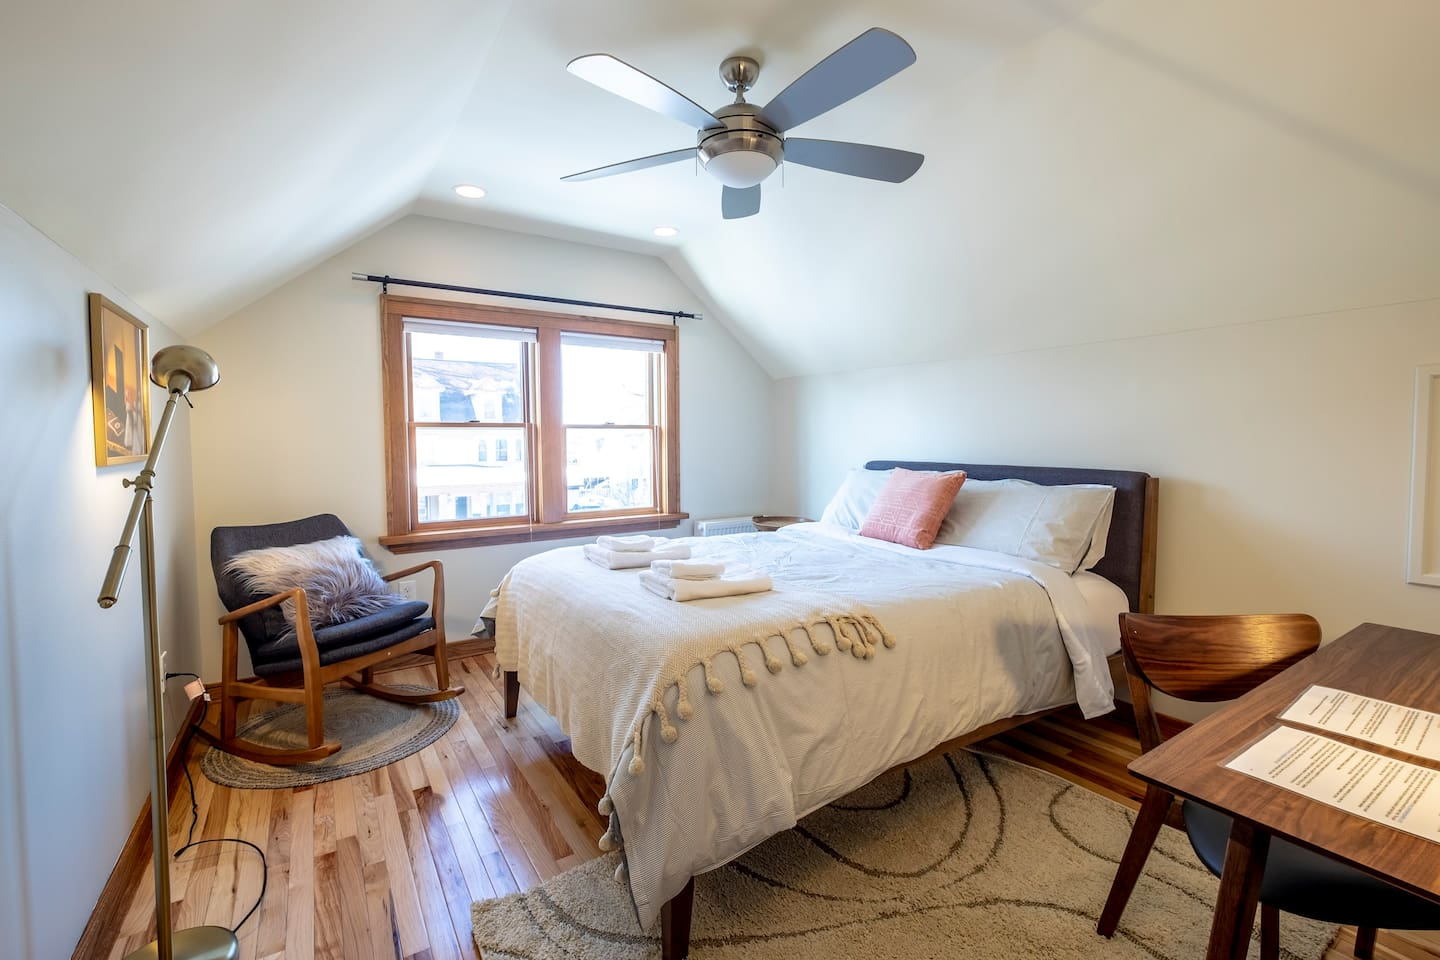 Cozy, large room with a queen size bed and a rocking chair that you won't want to leave!